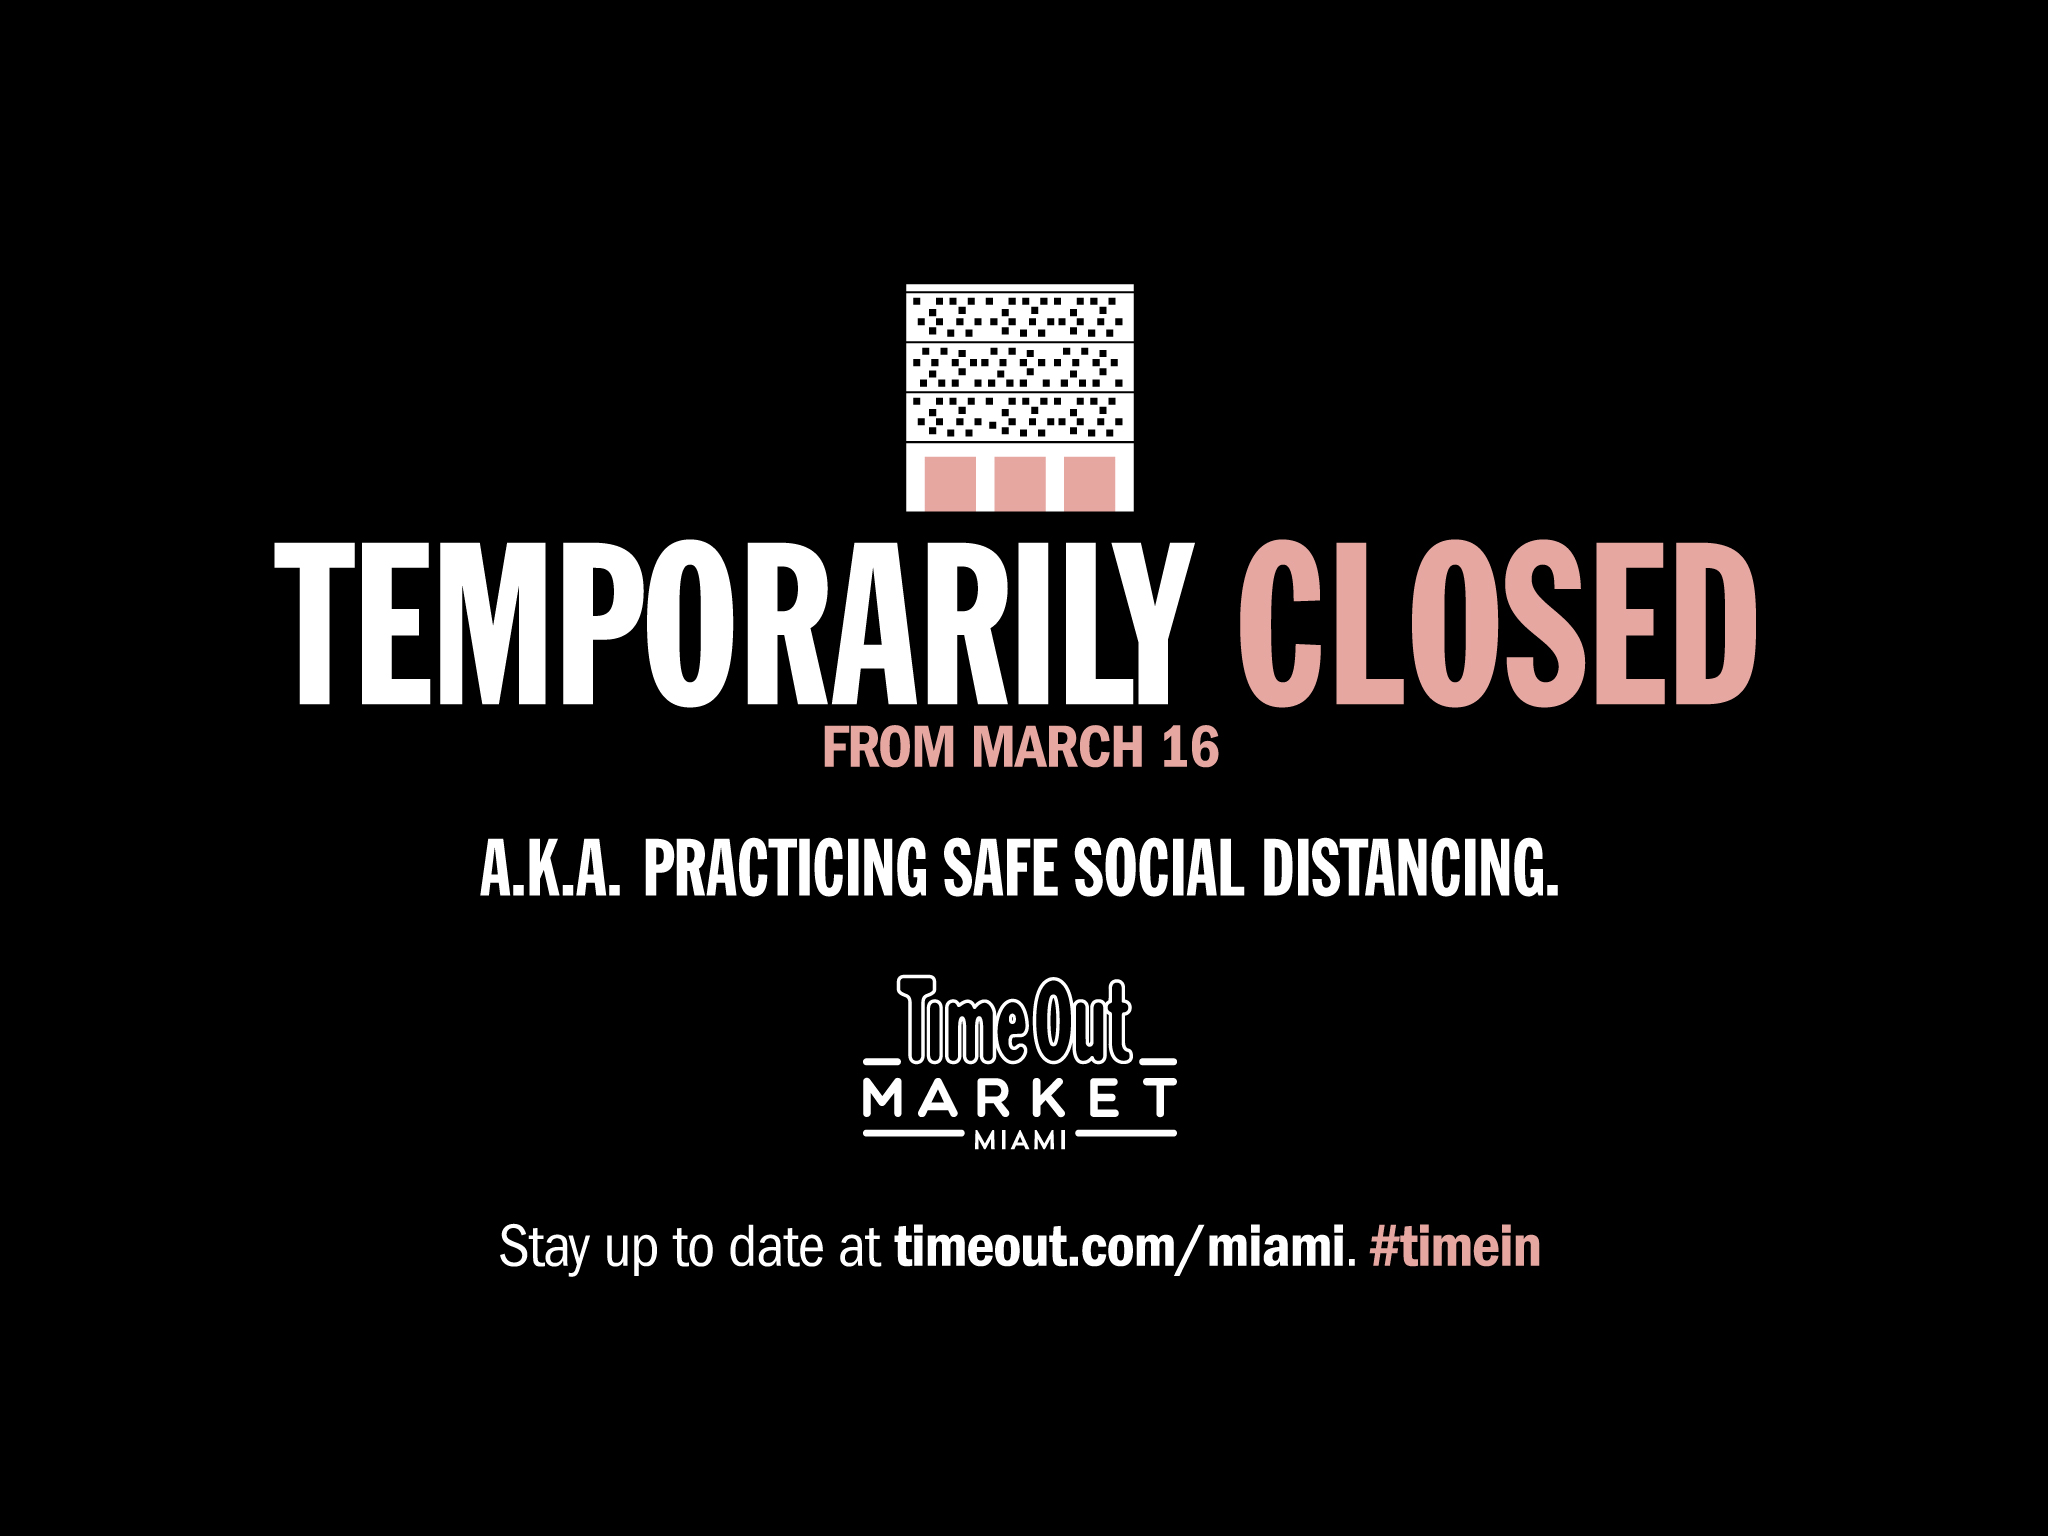 Time Out Market Miami is temporarily closed